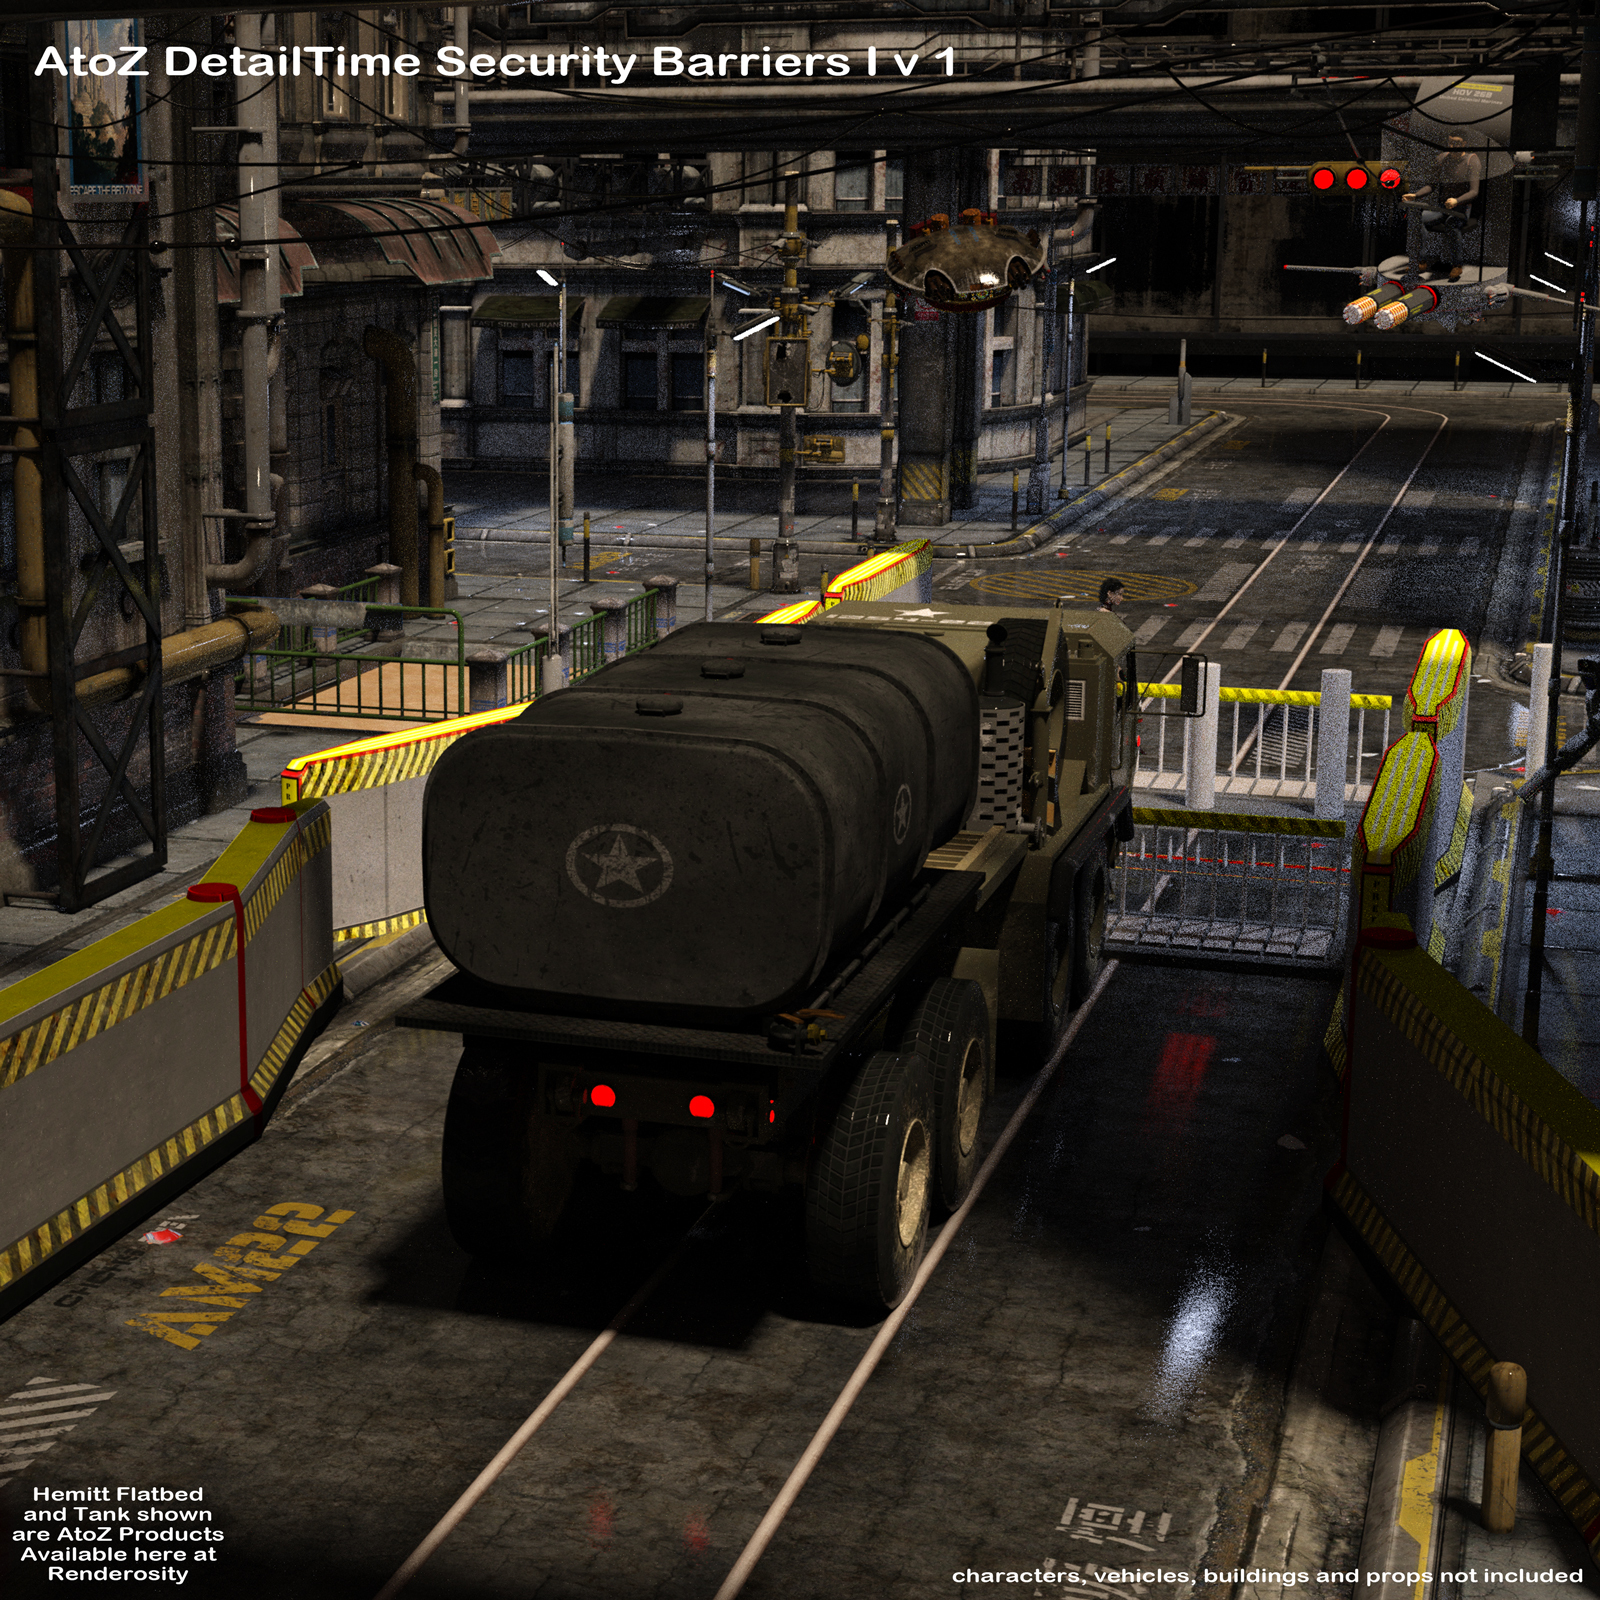 AtoZ DetailTime Roadway Security I v1 for Poser and DS